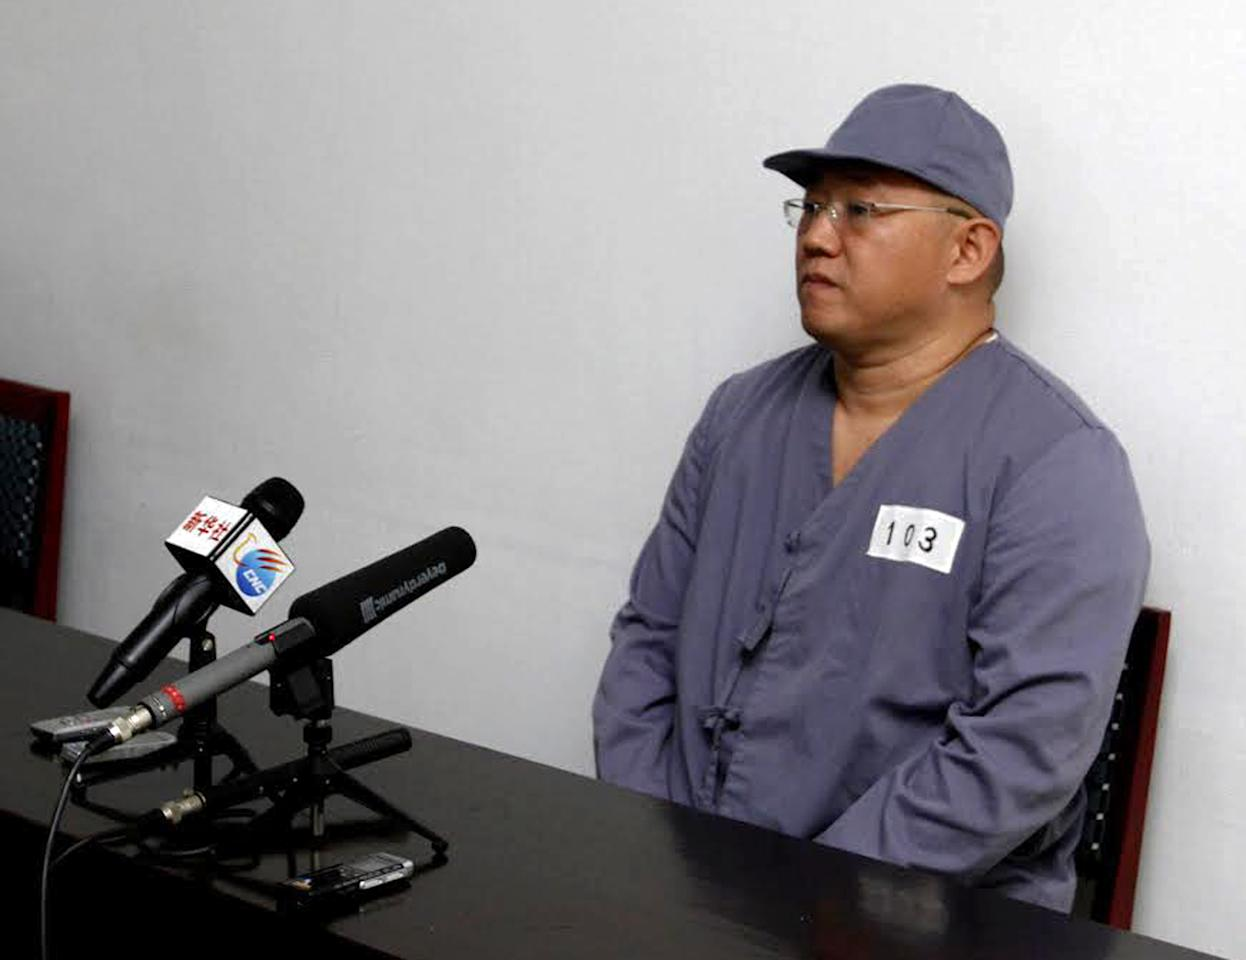 American missionary Kenneth Bae speaks to reporters at Pyongyang Friendship Hospital in Pyongyang Monday, Jan. 20, 2014. Bae, 45, who has been jailed in North Korea for more than a year, appealed for the U.S. to do its best to secure his release. (AP Photo/Kim Kwang Hyon)